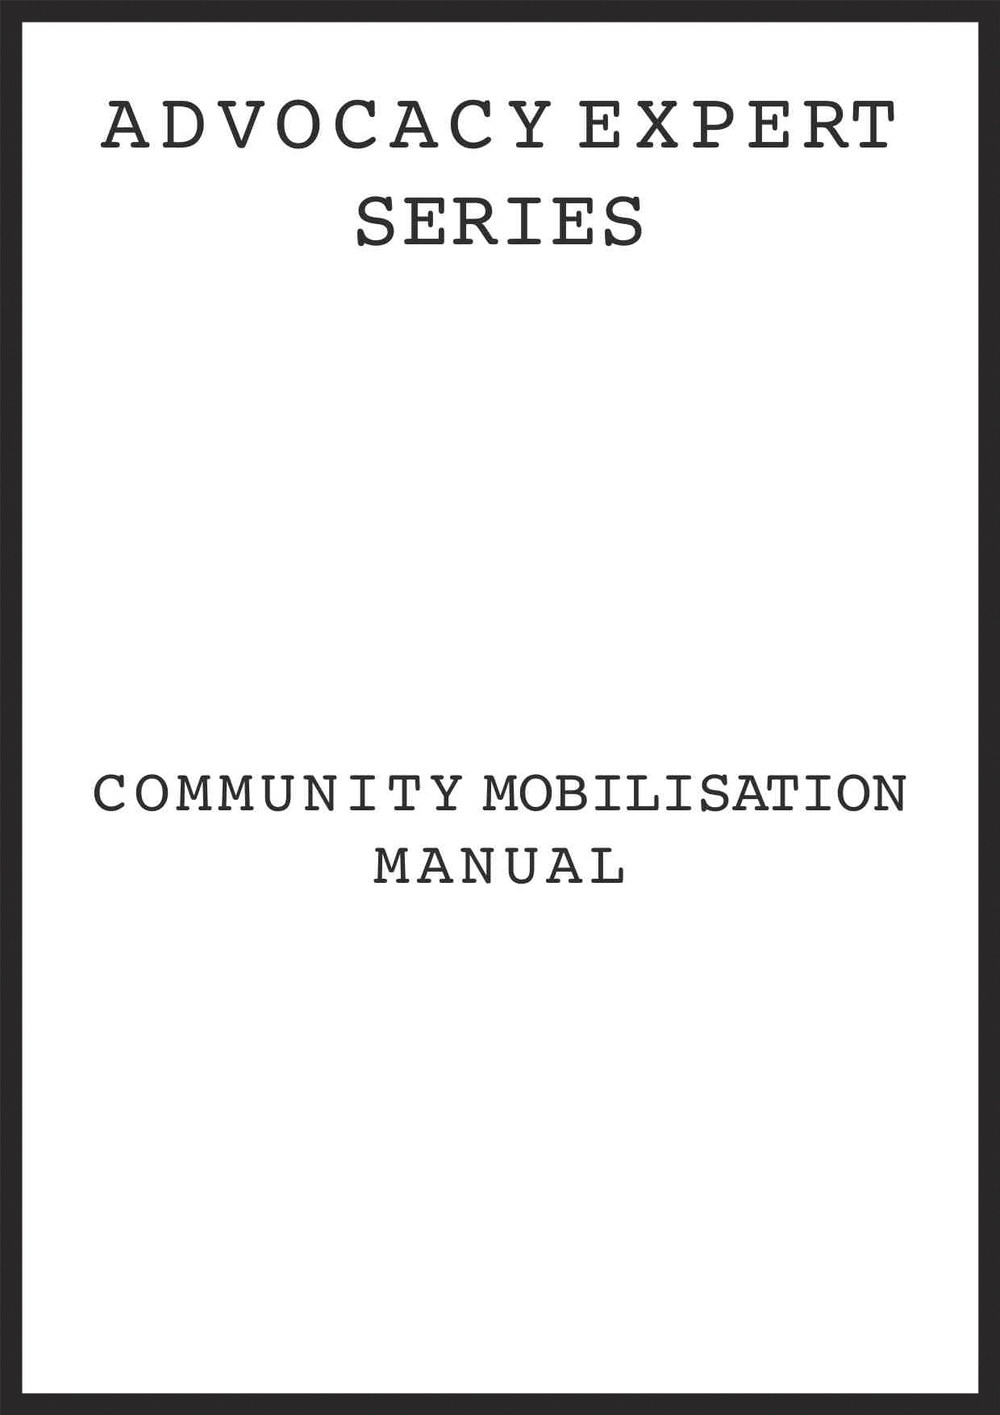 Community Mobilization Manual